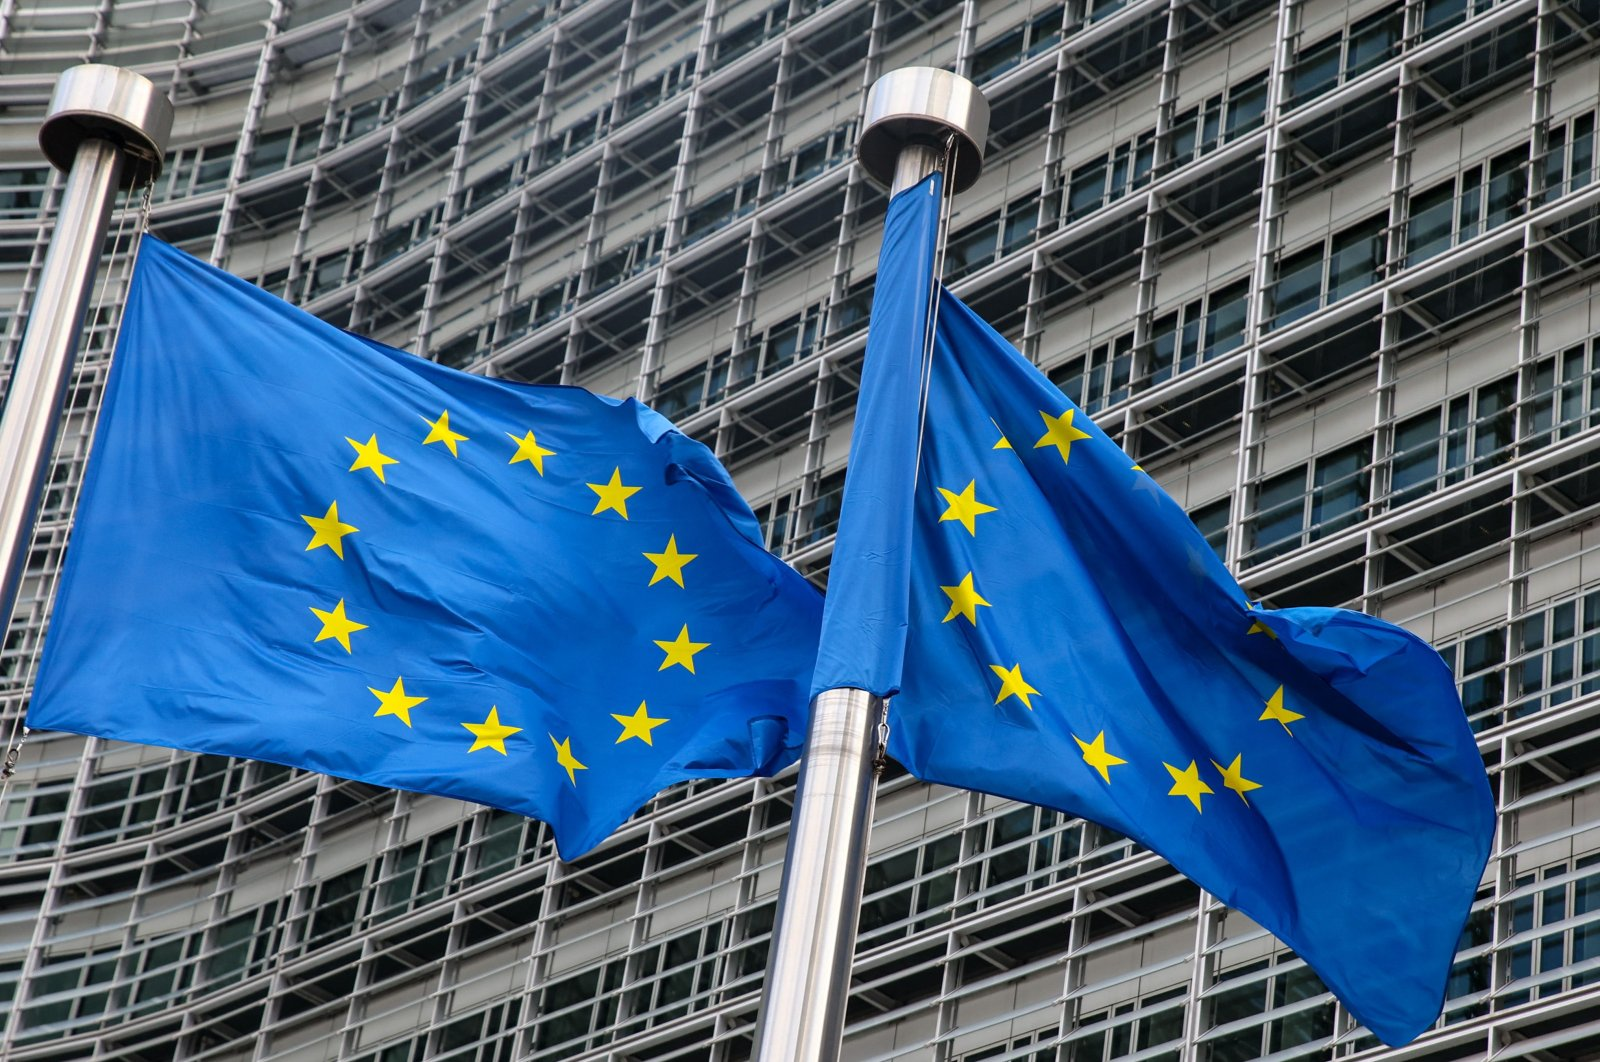 European Union flags fly outside the headquarters of the European Commission in Brussels, Belgium, March 11, 2021. (AFP Photo)